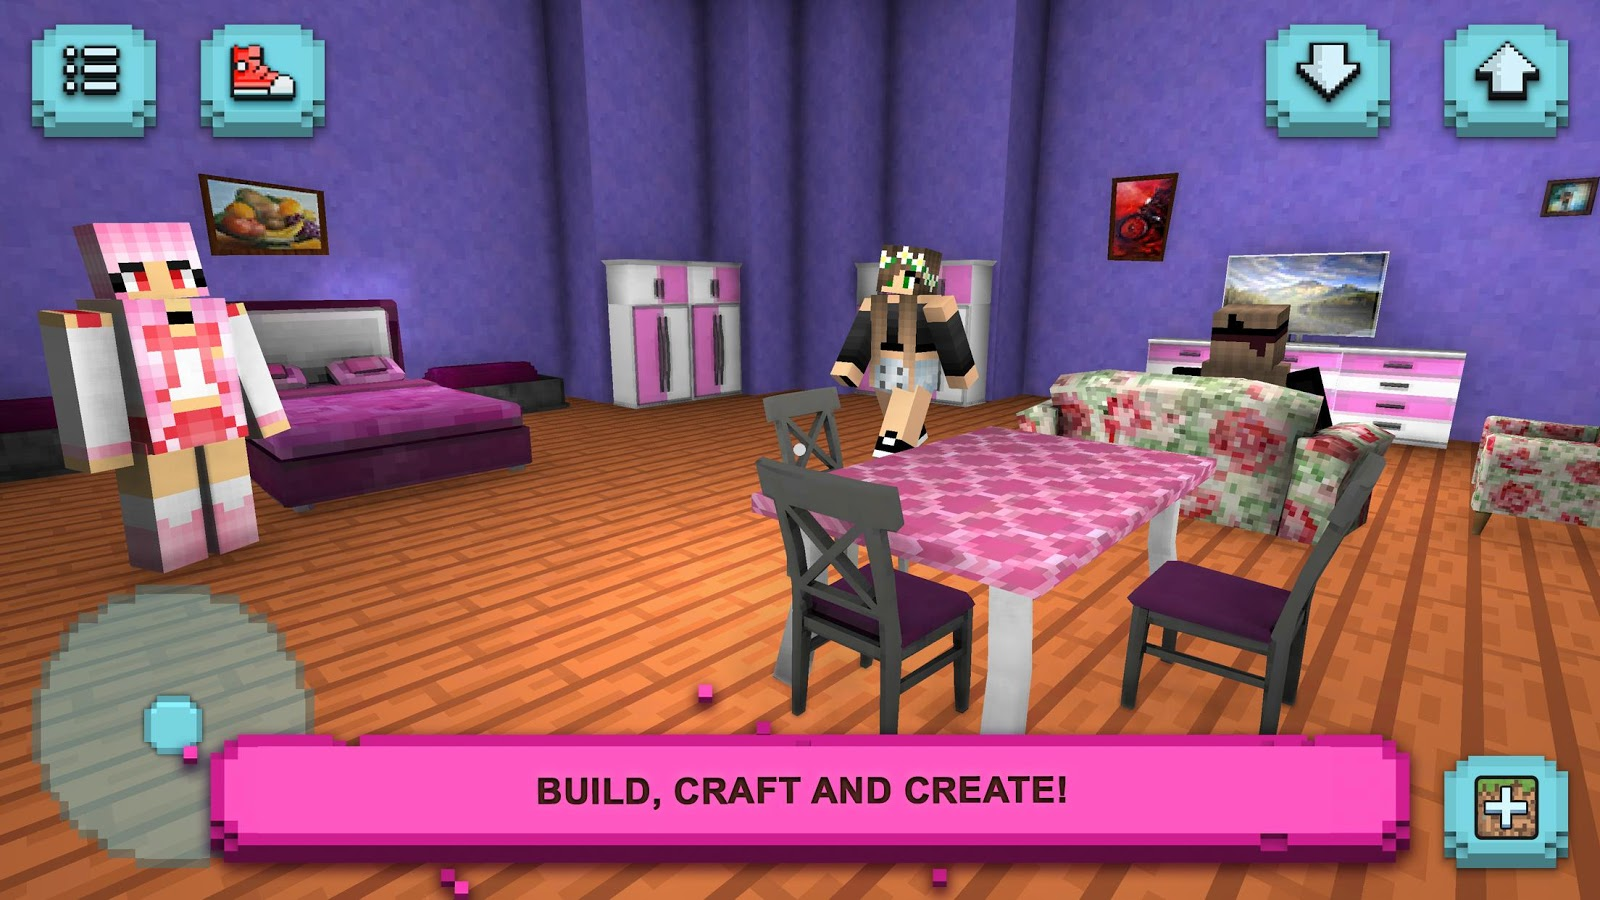 Girls exploration lite building craft chat android for Crafting and building 2